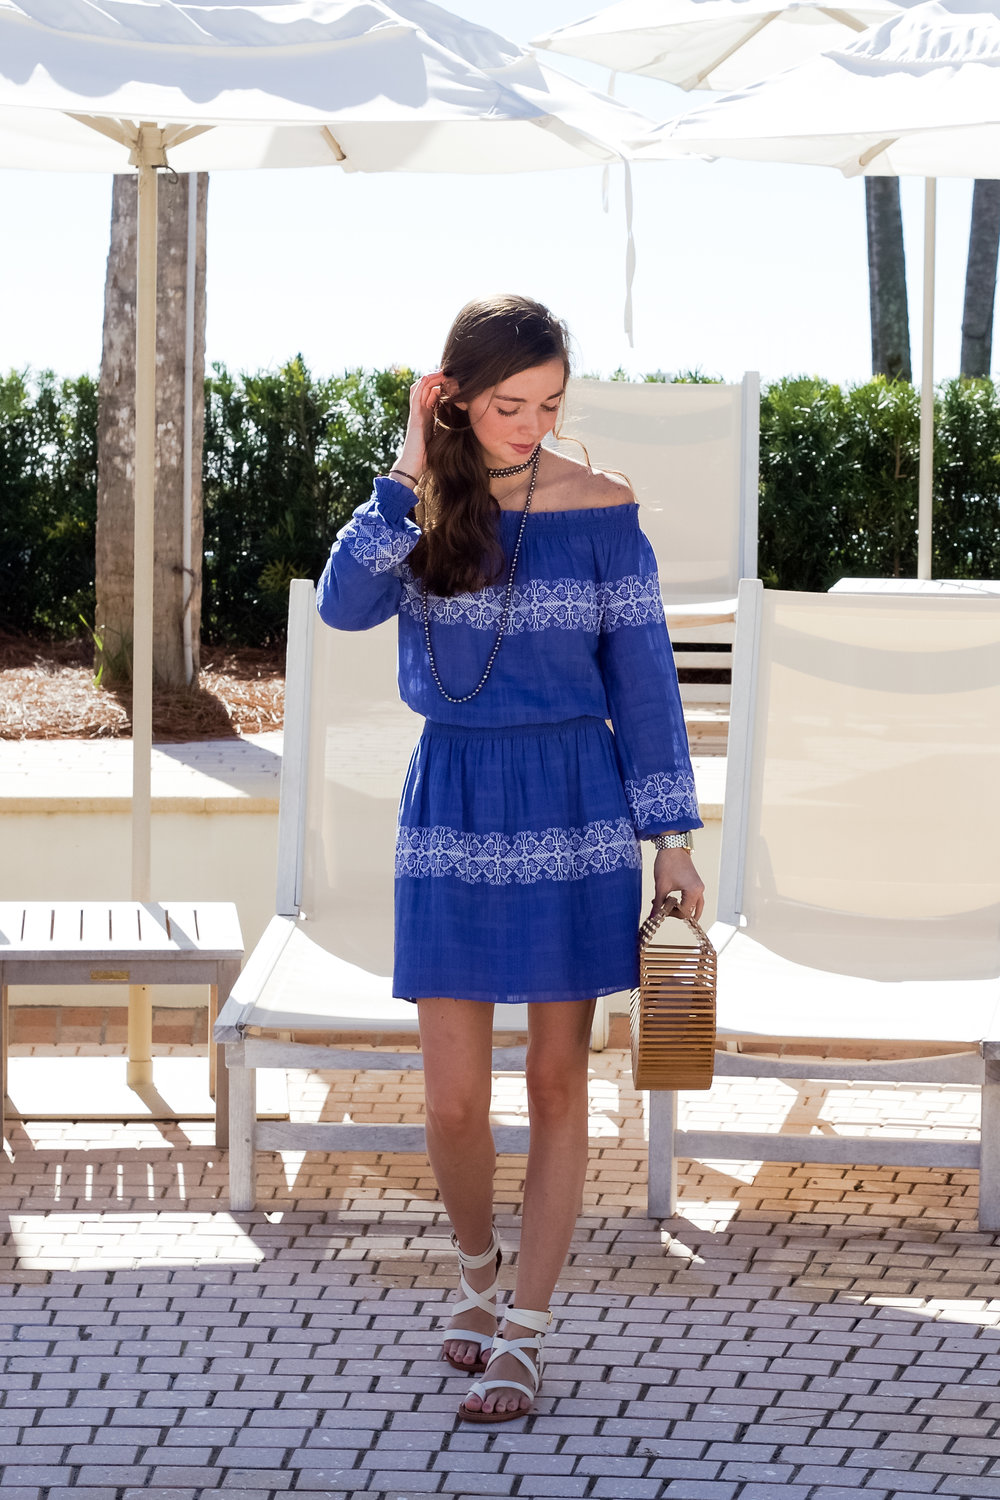 lcb style fashion blogger tory burch dress pool beach sea island (14 of 52).jpg